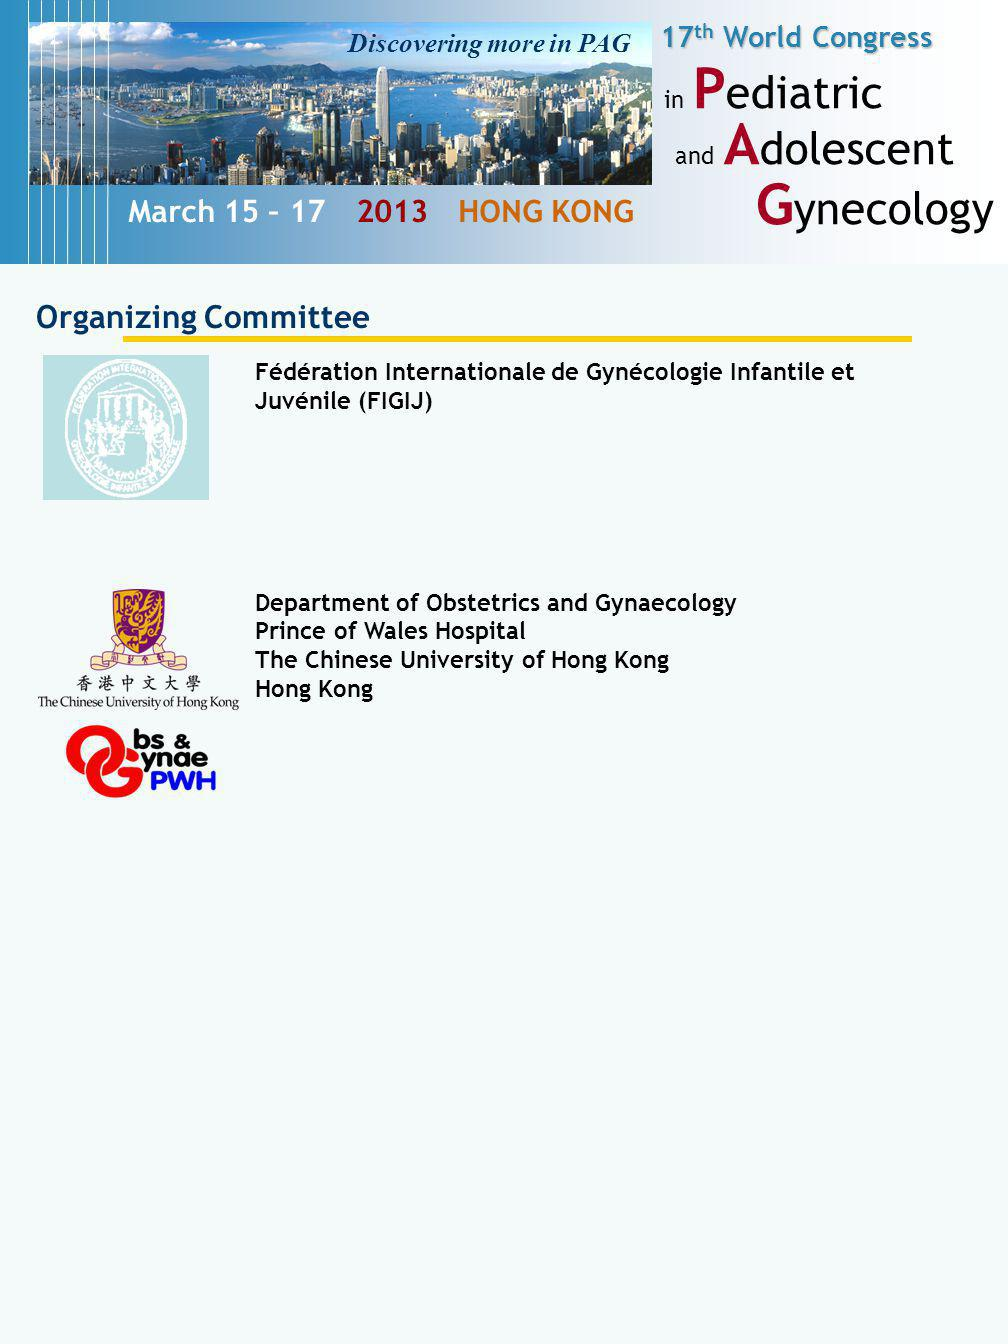 17 th World Congress in P ediatric and A dolescent G ynecology March 15 – 17 2013 HONG KONG Organizing Committee Fédération Internationale de Gynécologie Infantile et Juvénile (FIGIJ) Department of Obstetrics and Gynaecology Prince of Wales Hospital The Chinese University of Hong Kong Hong Kong Discovering more in PAG